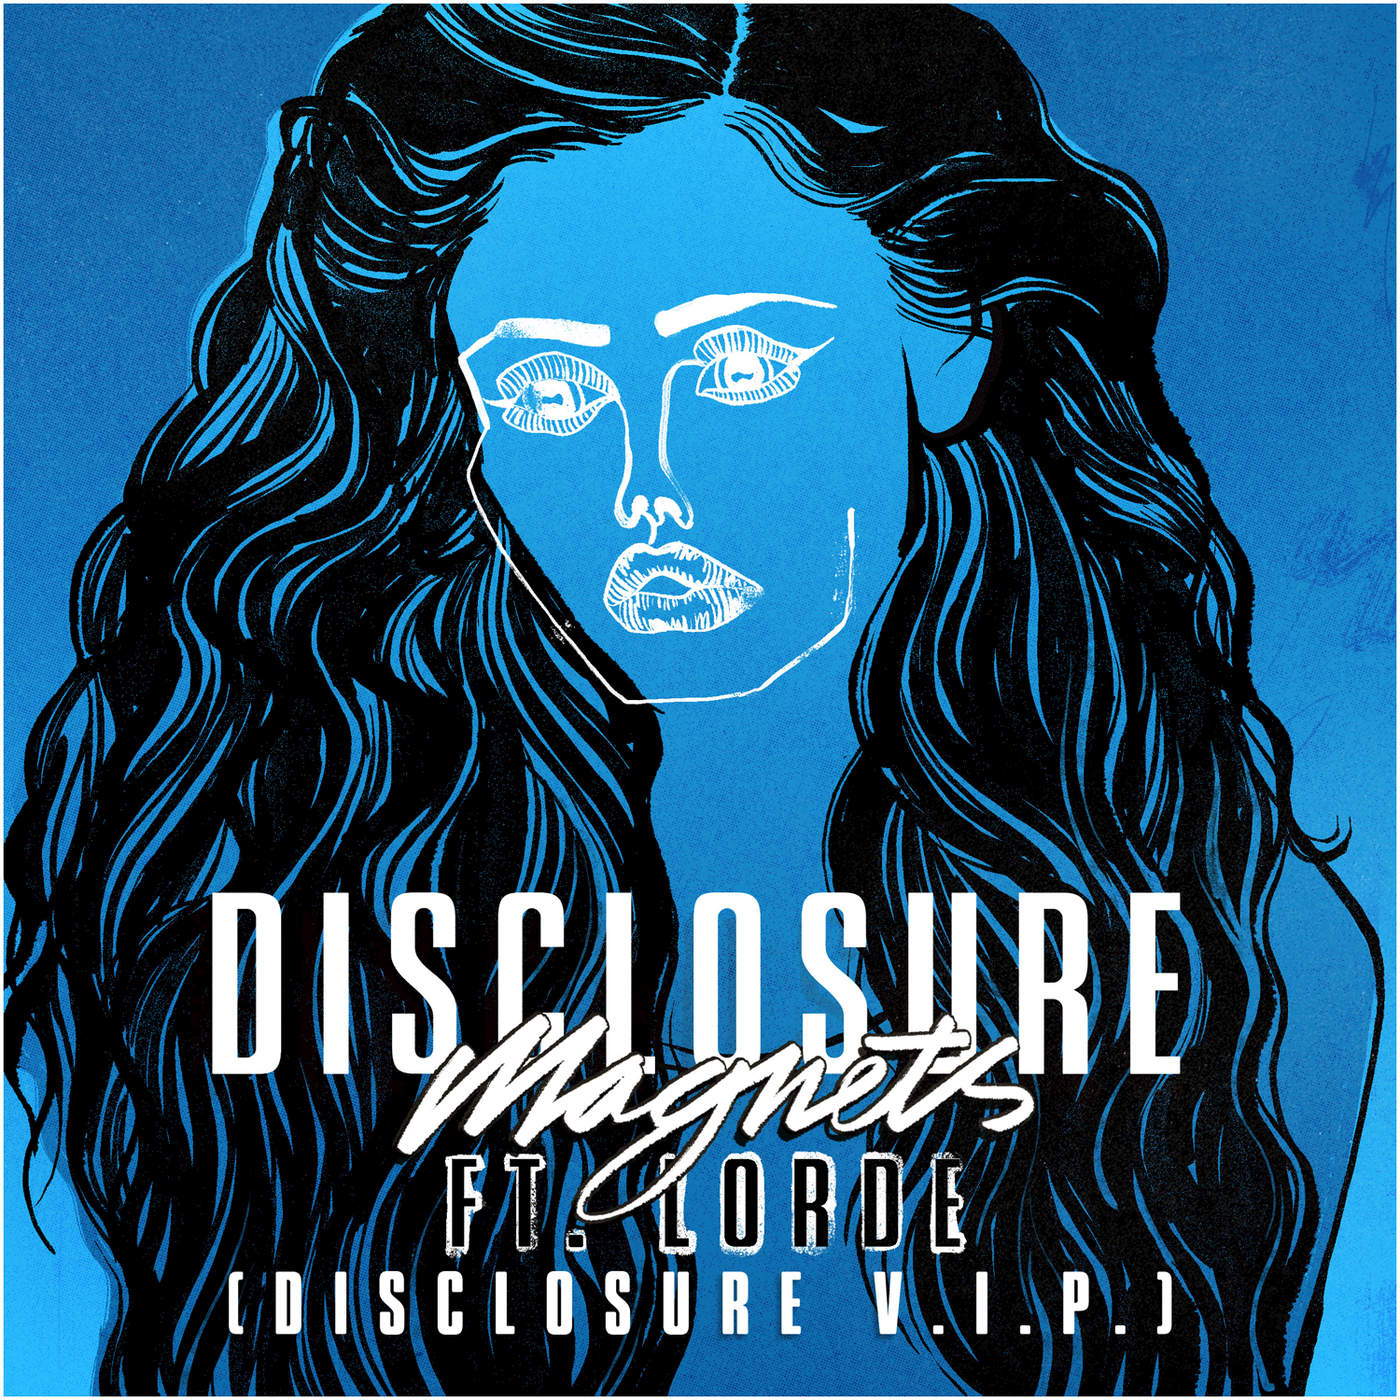 Disclosure - Magnets (feat. Lorde) [Disclosure V.I.P.] - Single Cover